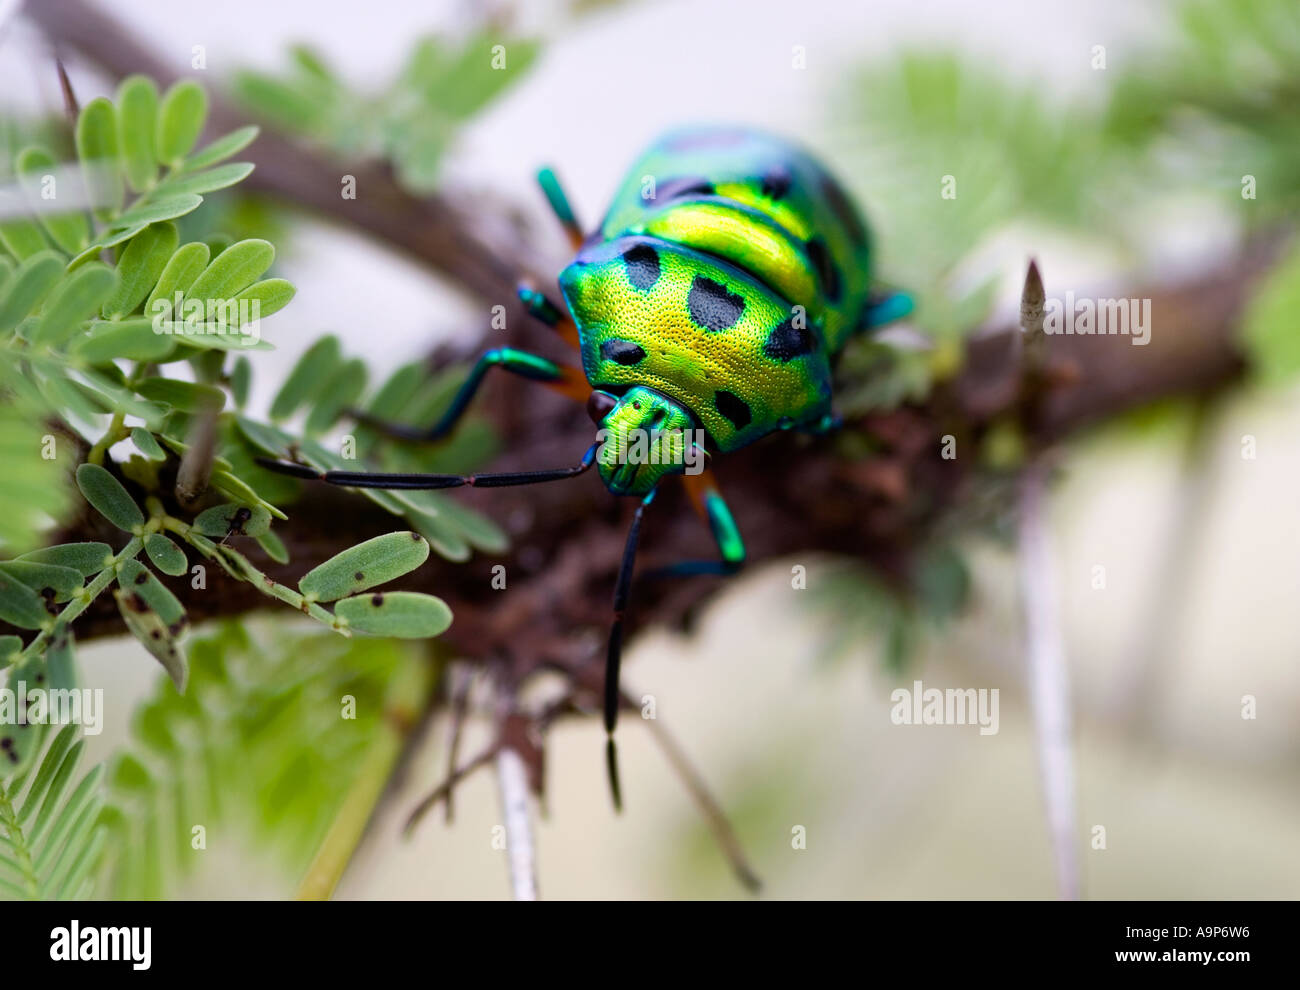 Jewel bug in a bush in the Indian countryside - Stock Image